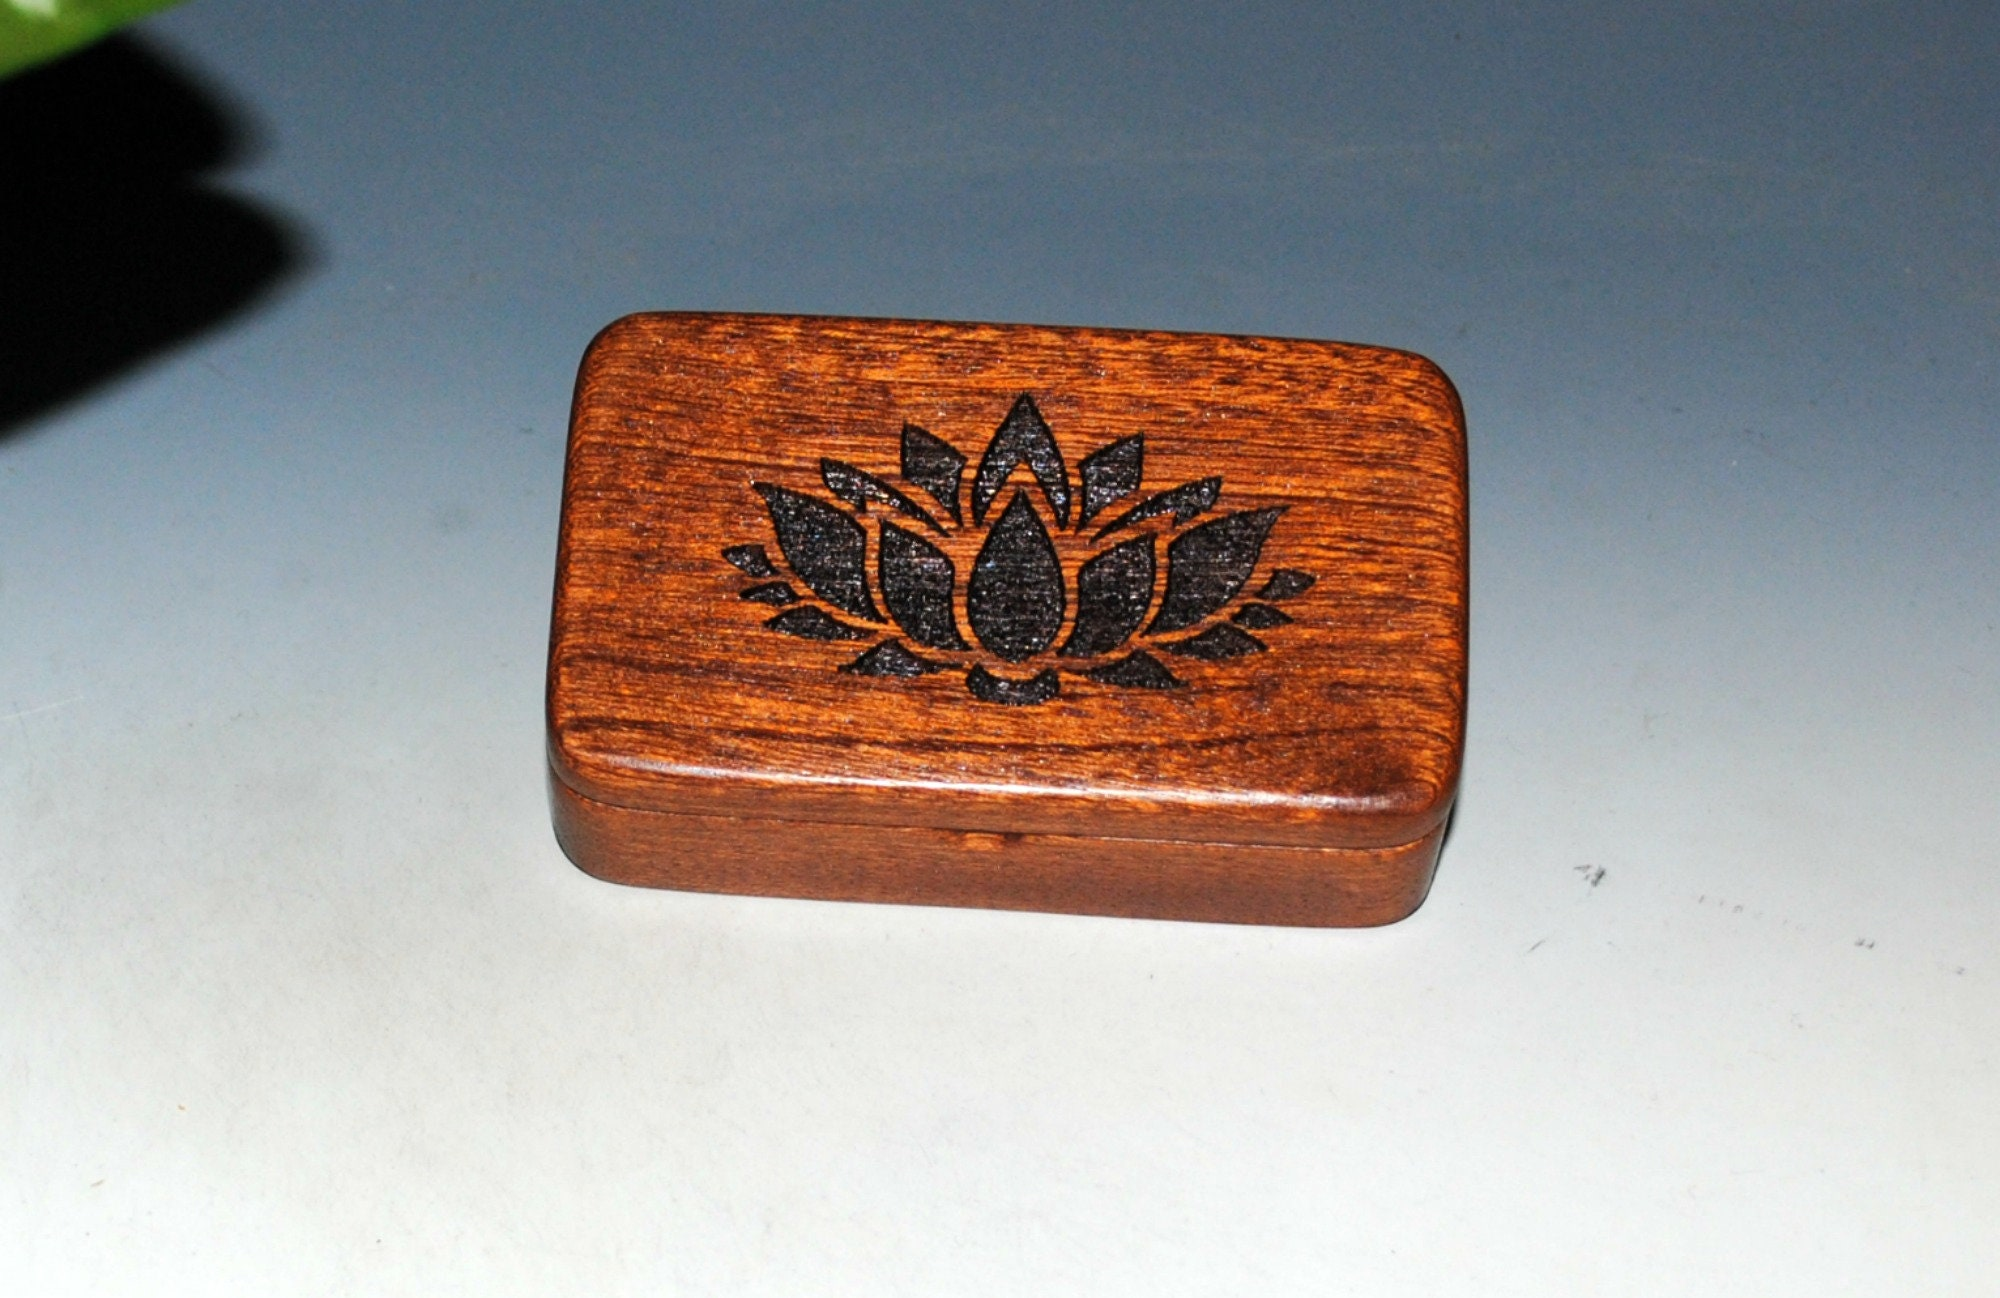 Small Wooden Box With an Engraved Lotus on Mahogany